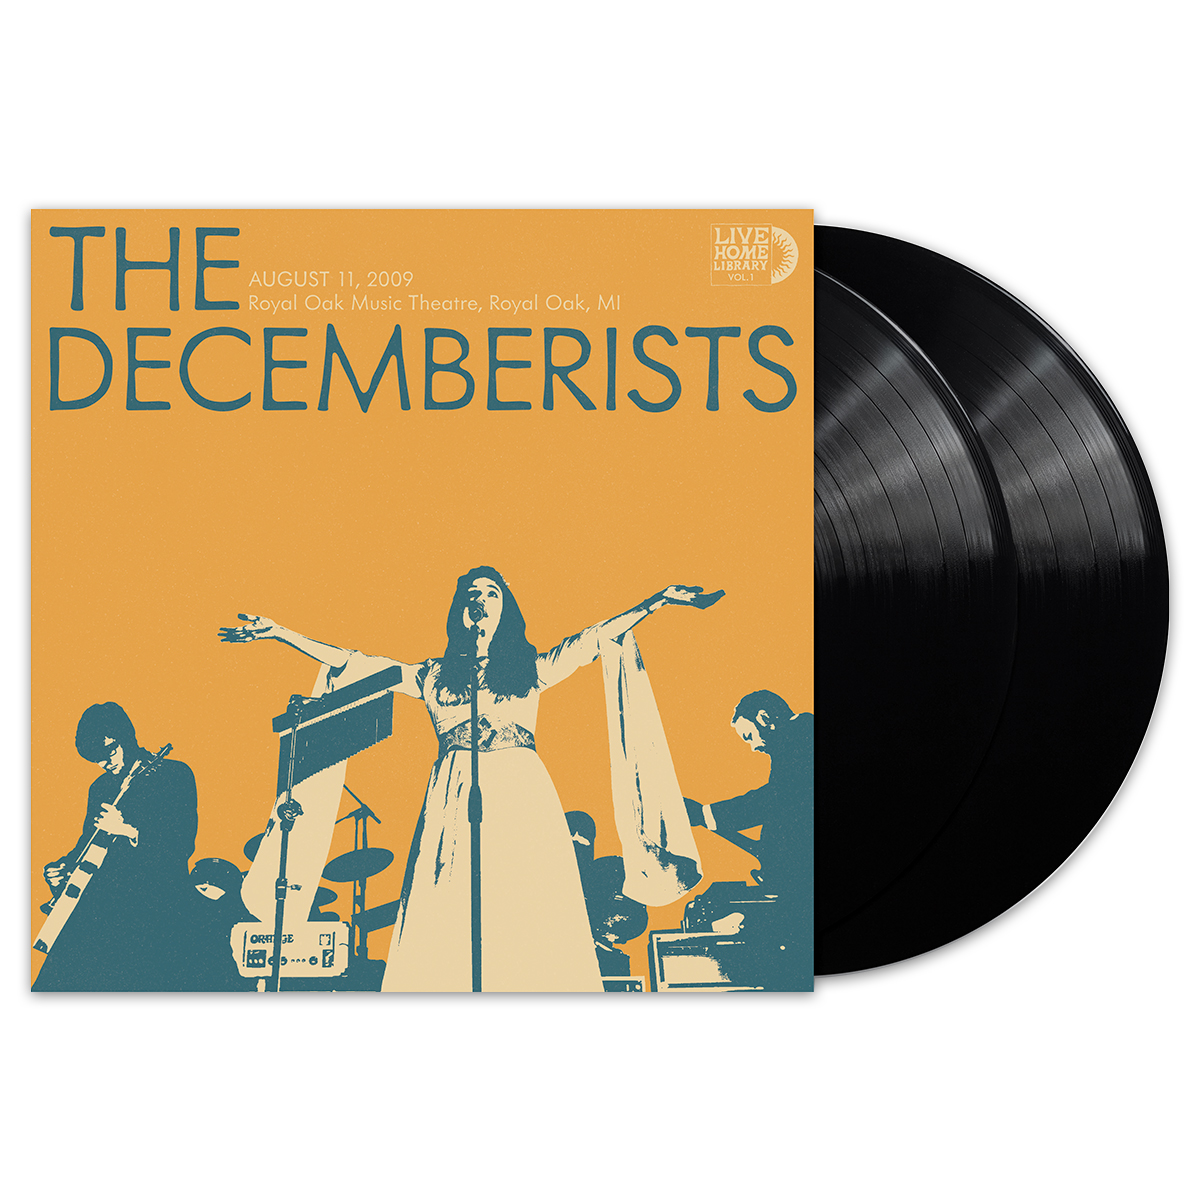 THE DECEMBERISTS - Live Home Library Vol I.  - Black Vinyl